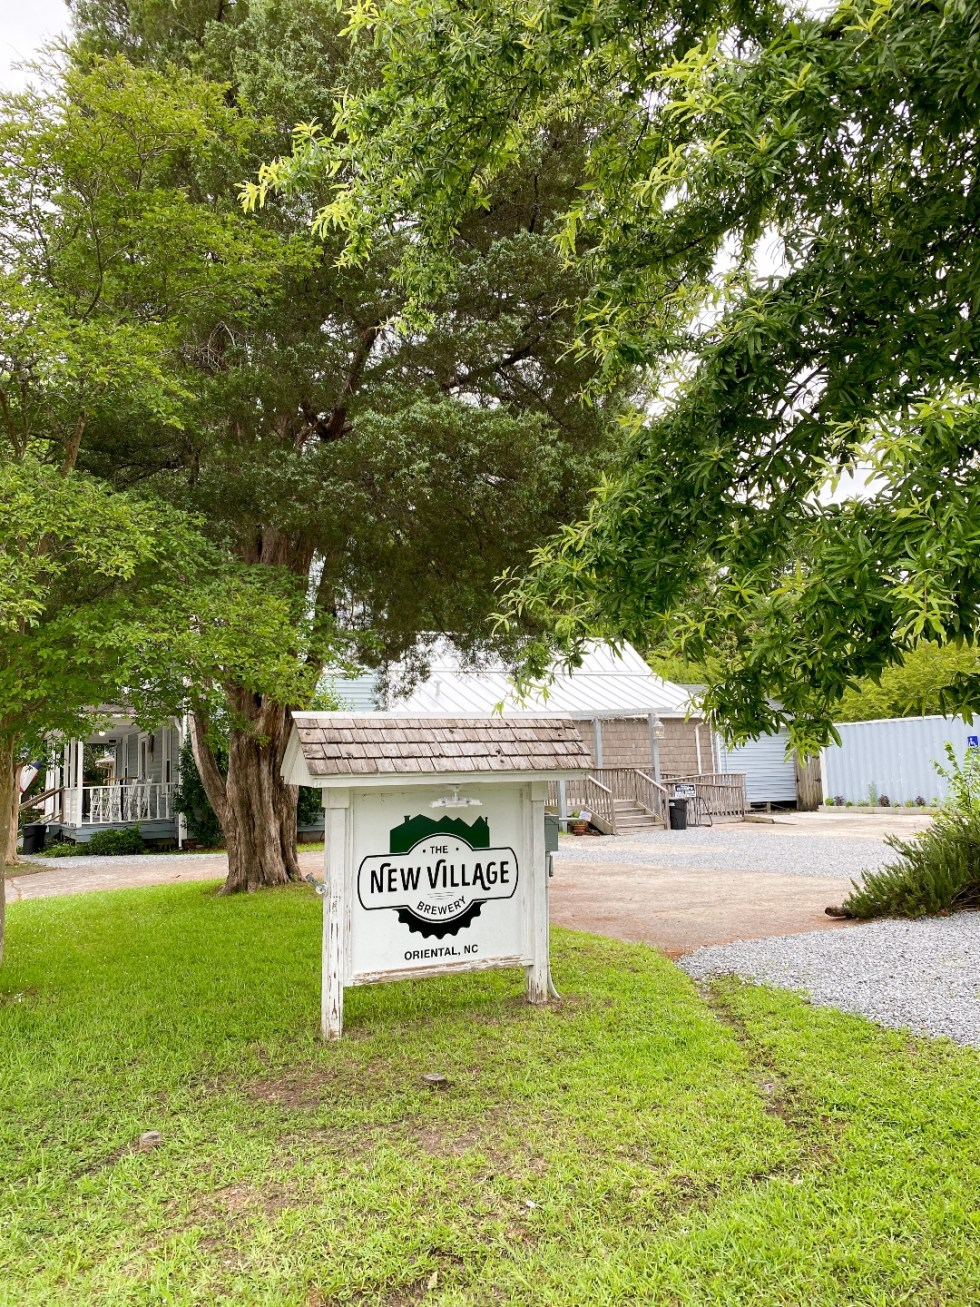 What to Do in Oriental, NC - I'm Fixin' To - @imfixintoblog |. Things to do in Oriental NC by popular NC travel blog, I'm Fixin' To: image of the New Village brewery.